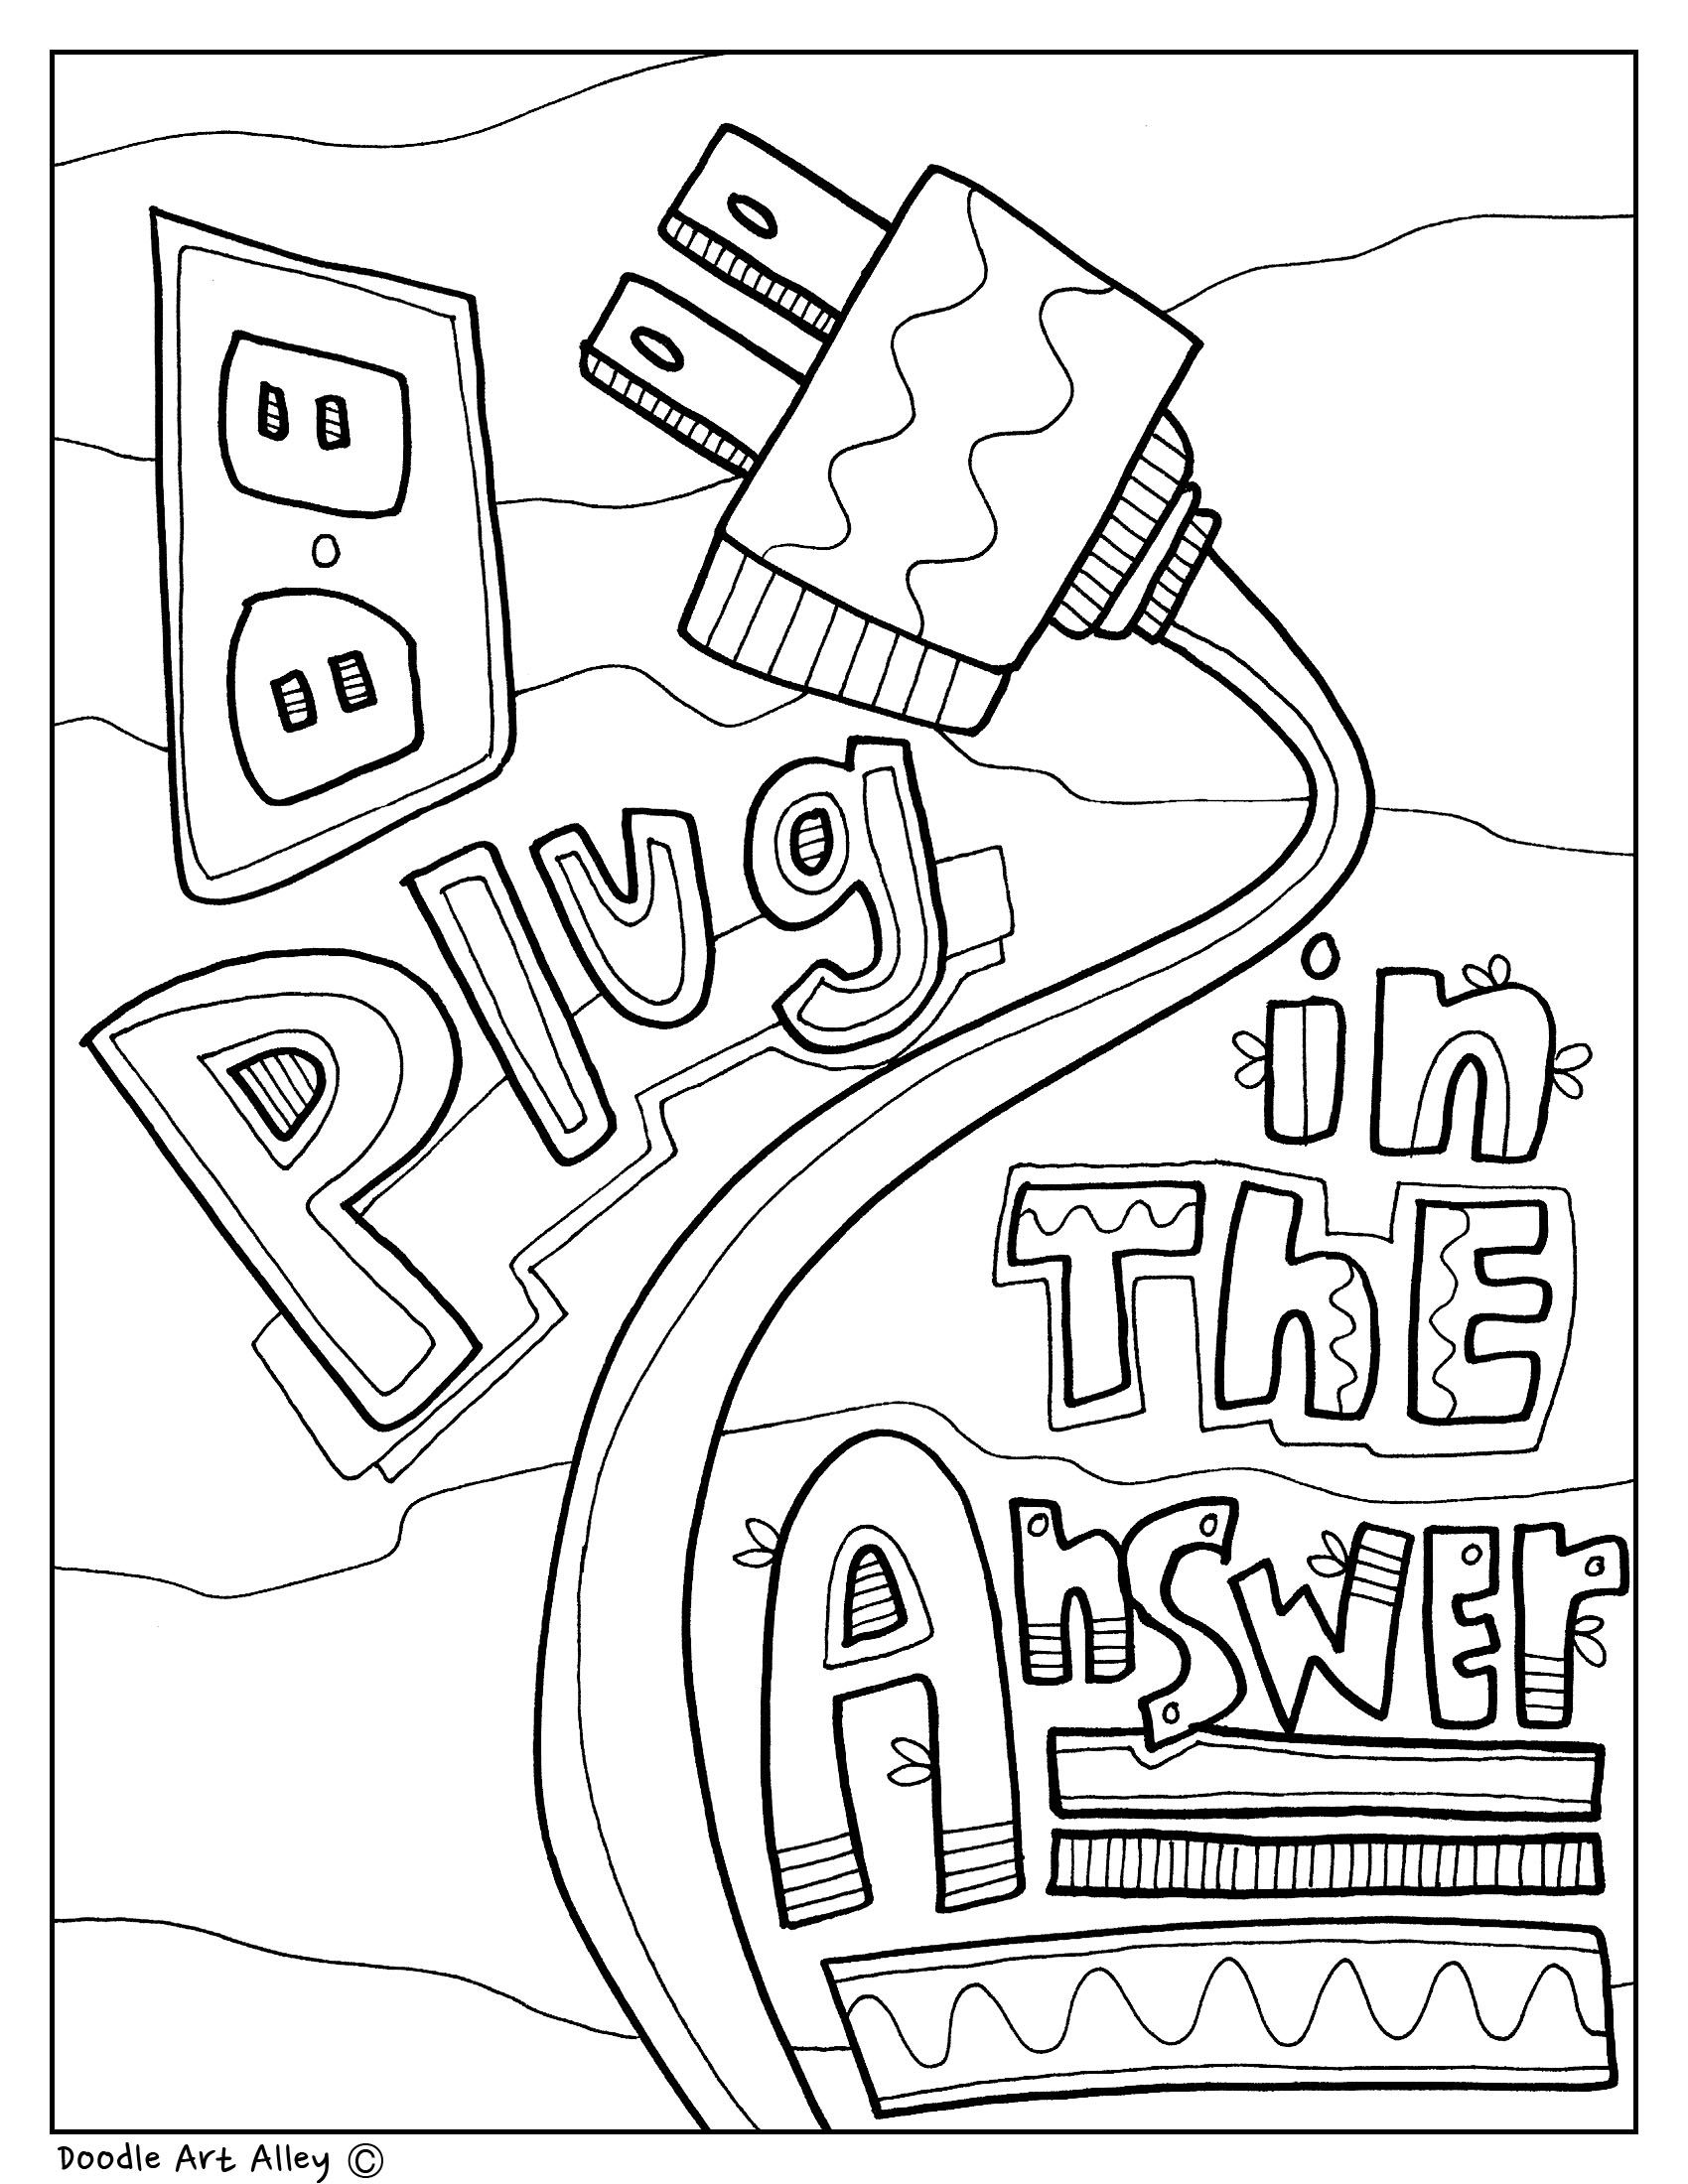 Testing Strategies Testing Strategy Coloring Pages At